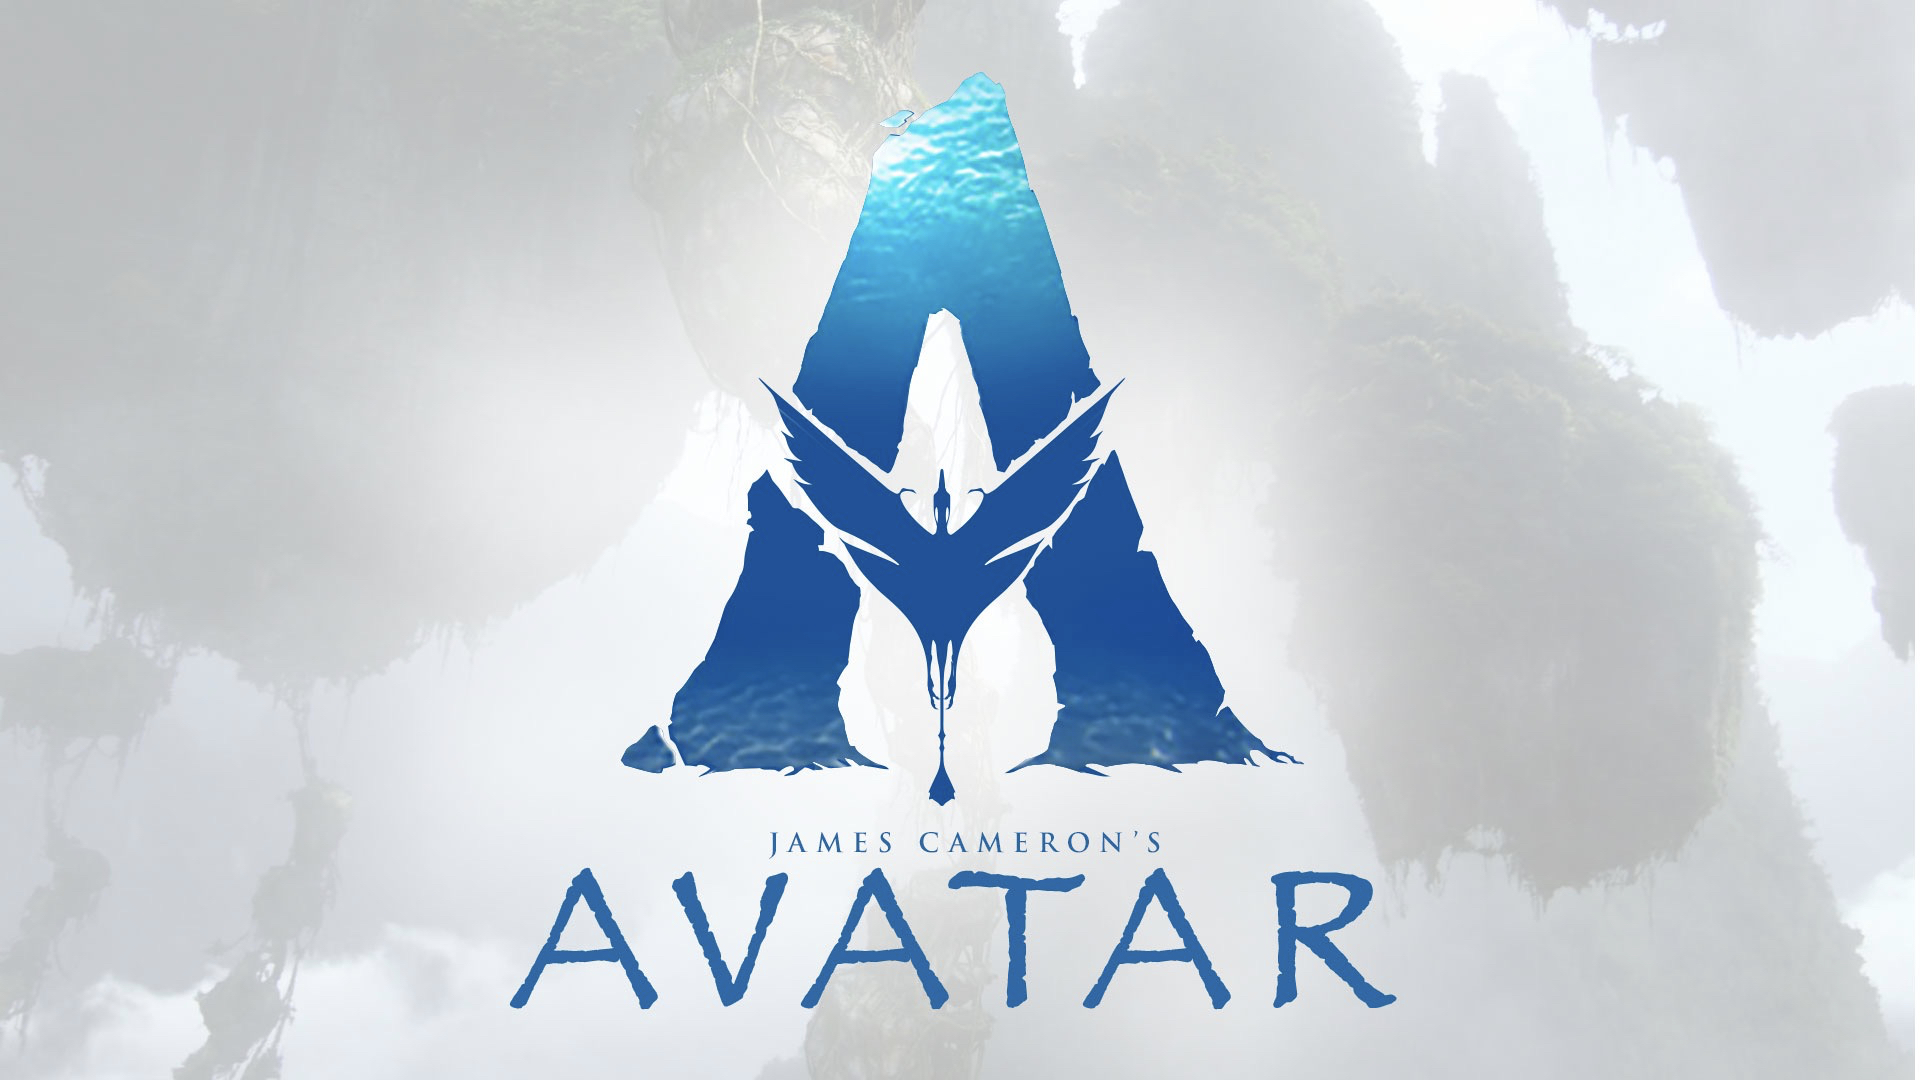 The Equinox Group worked with LightHouse Entertainment to develop the first brand mark for the Avatar franchise.